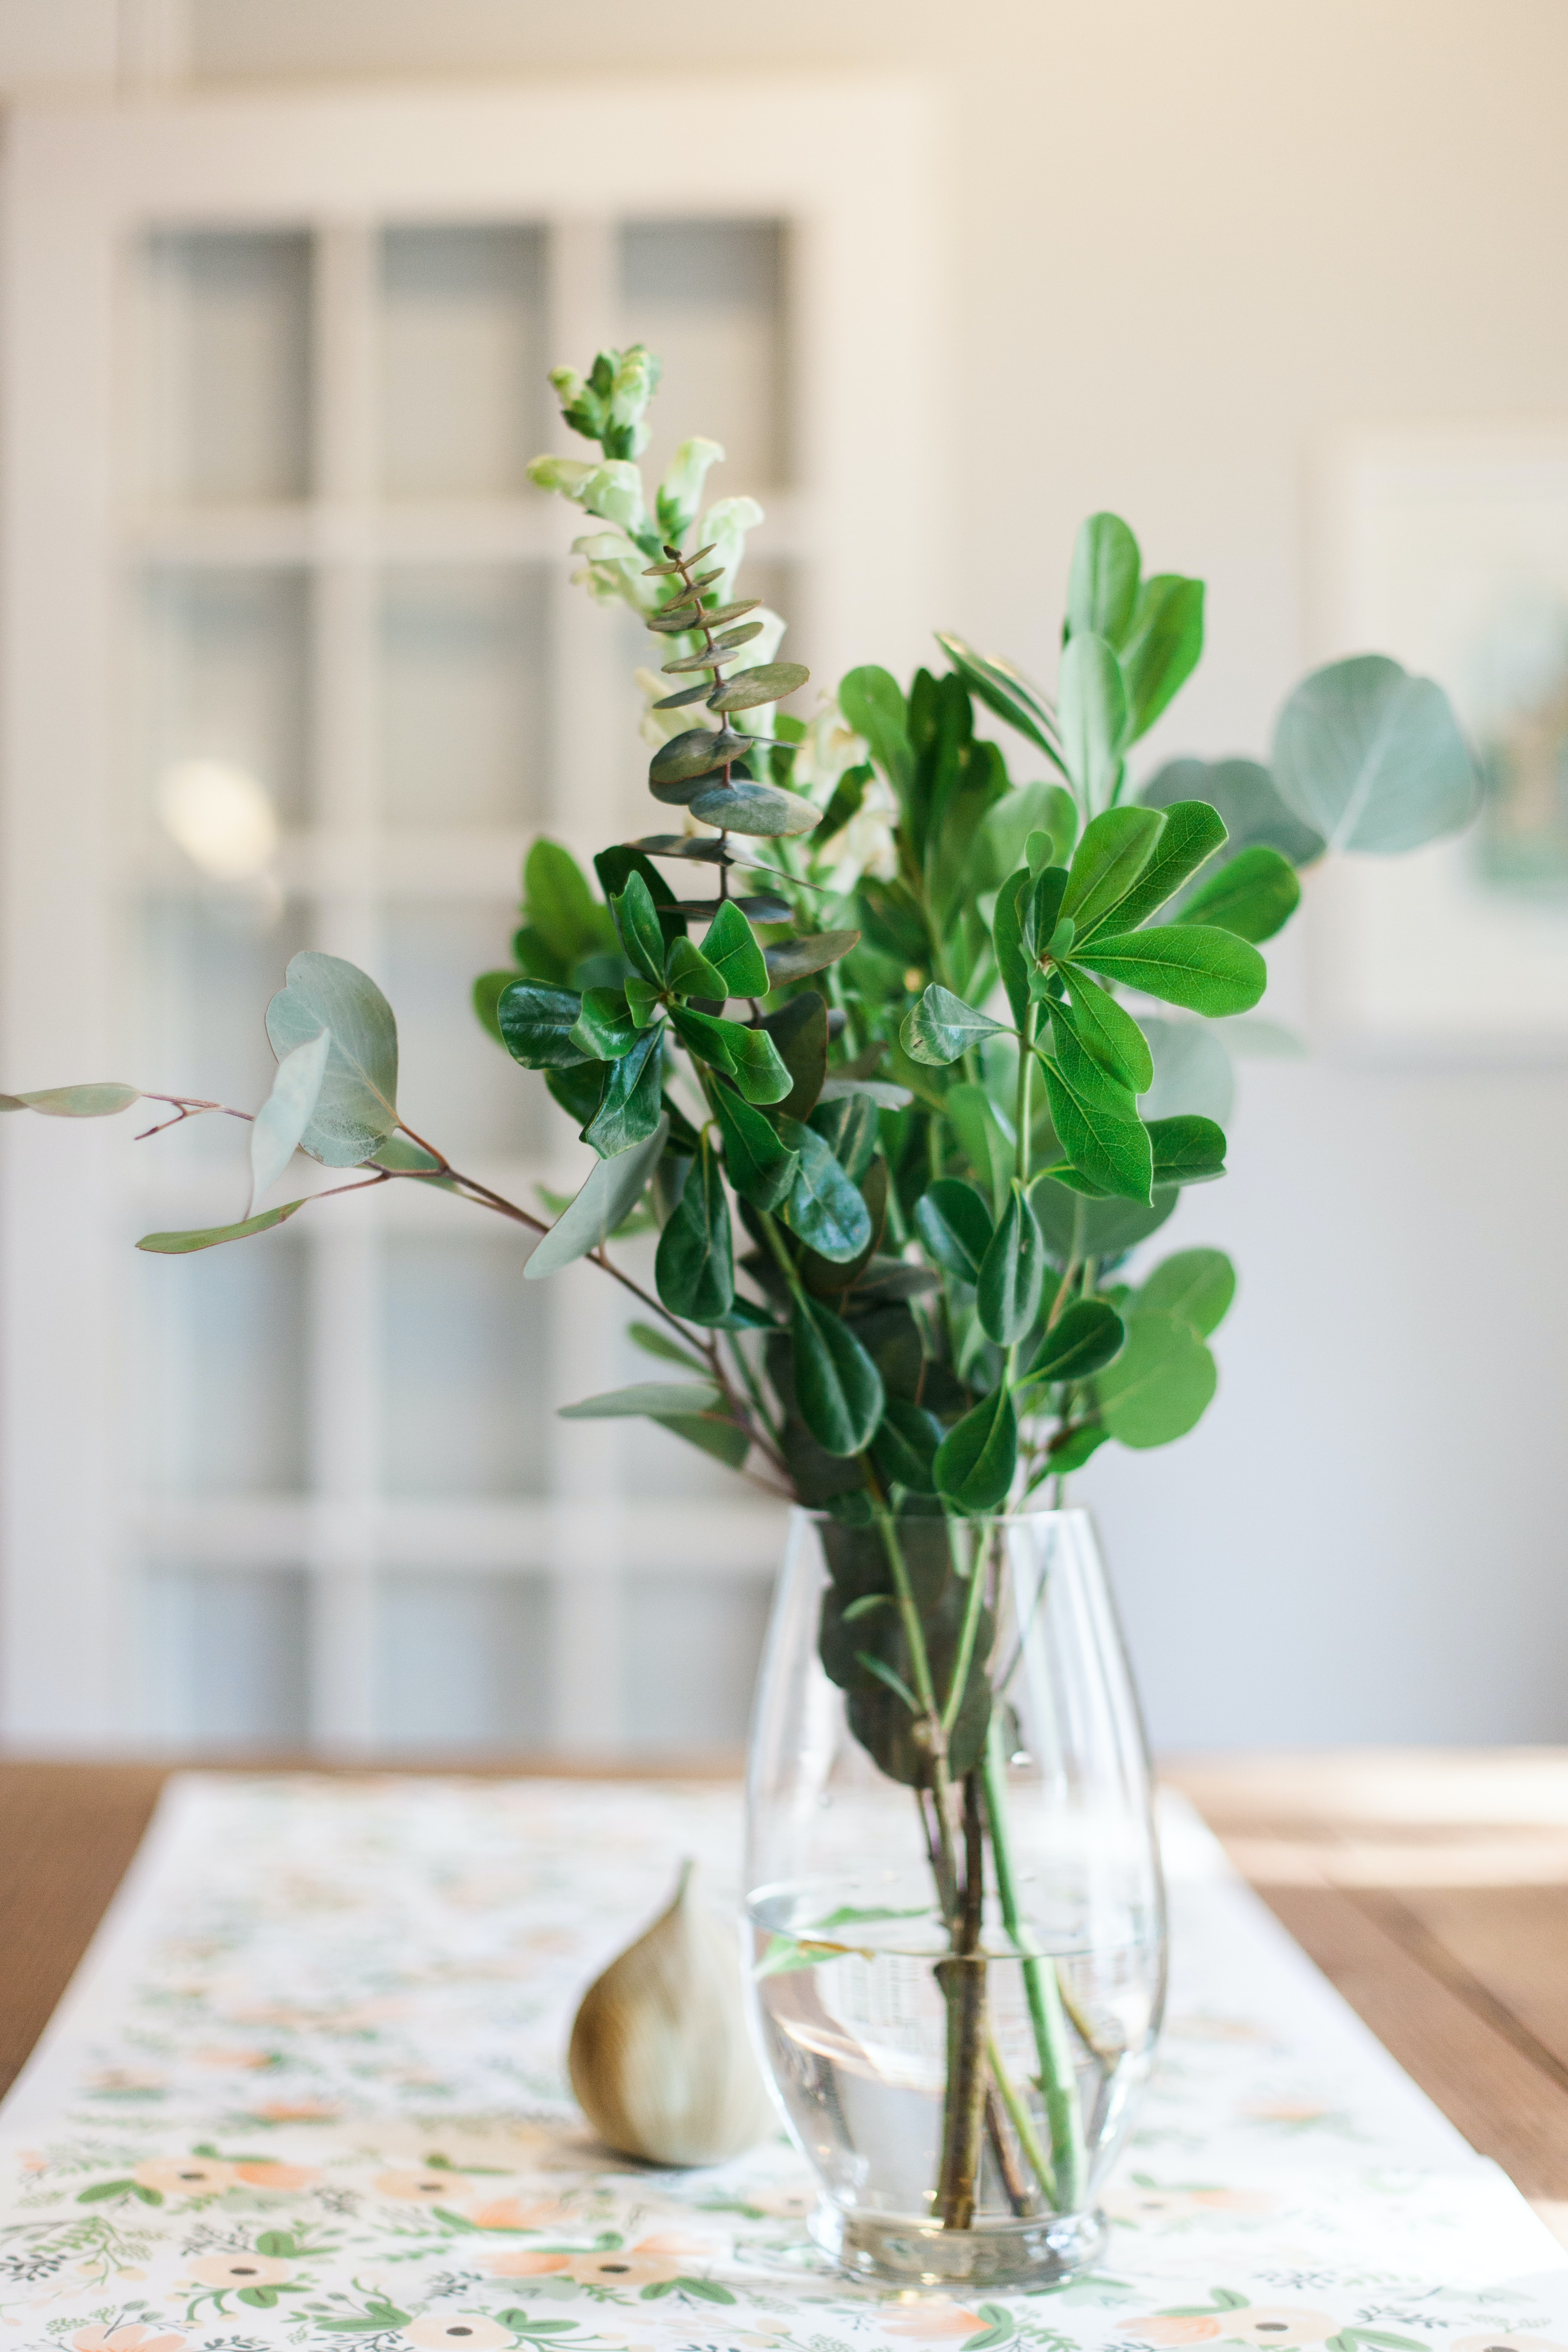 leaves arrangement in vase on table